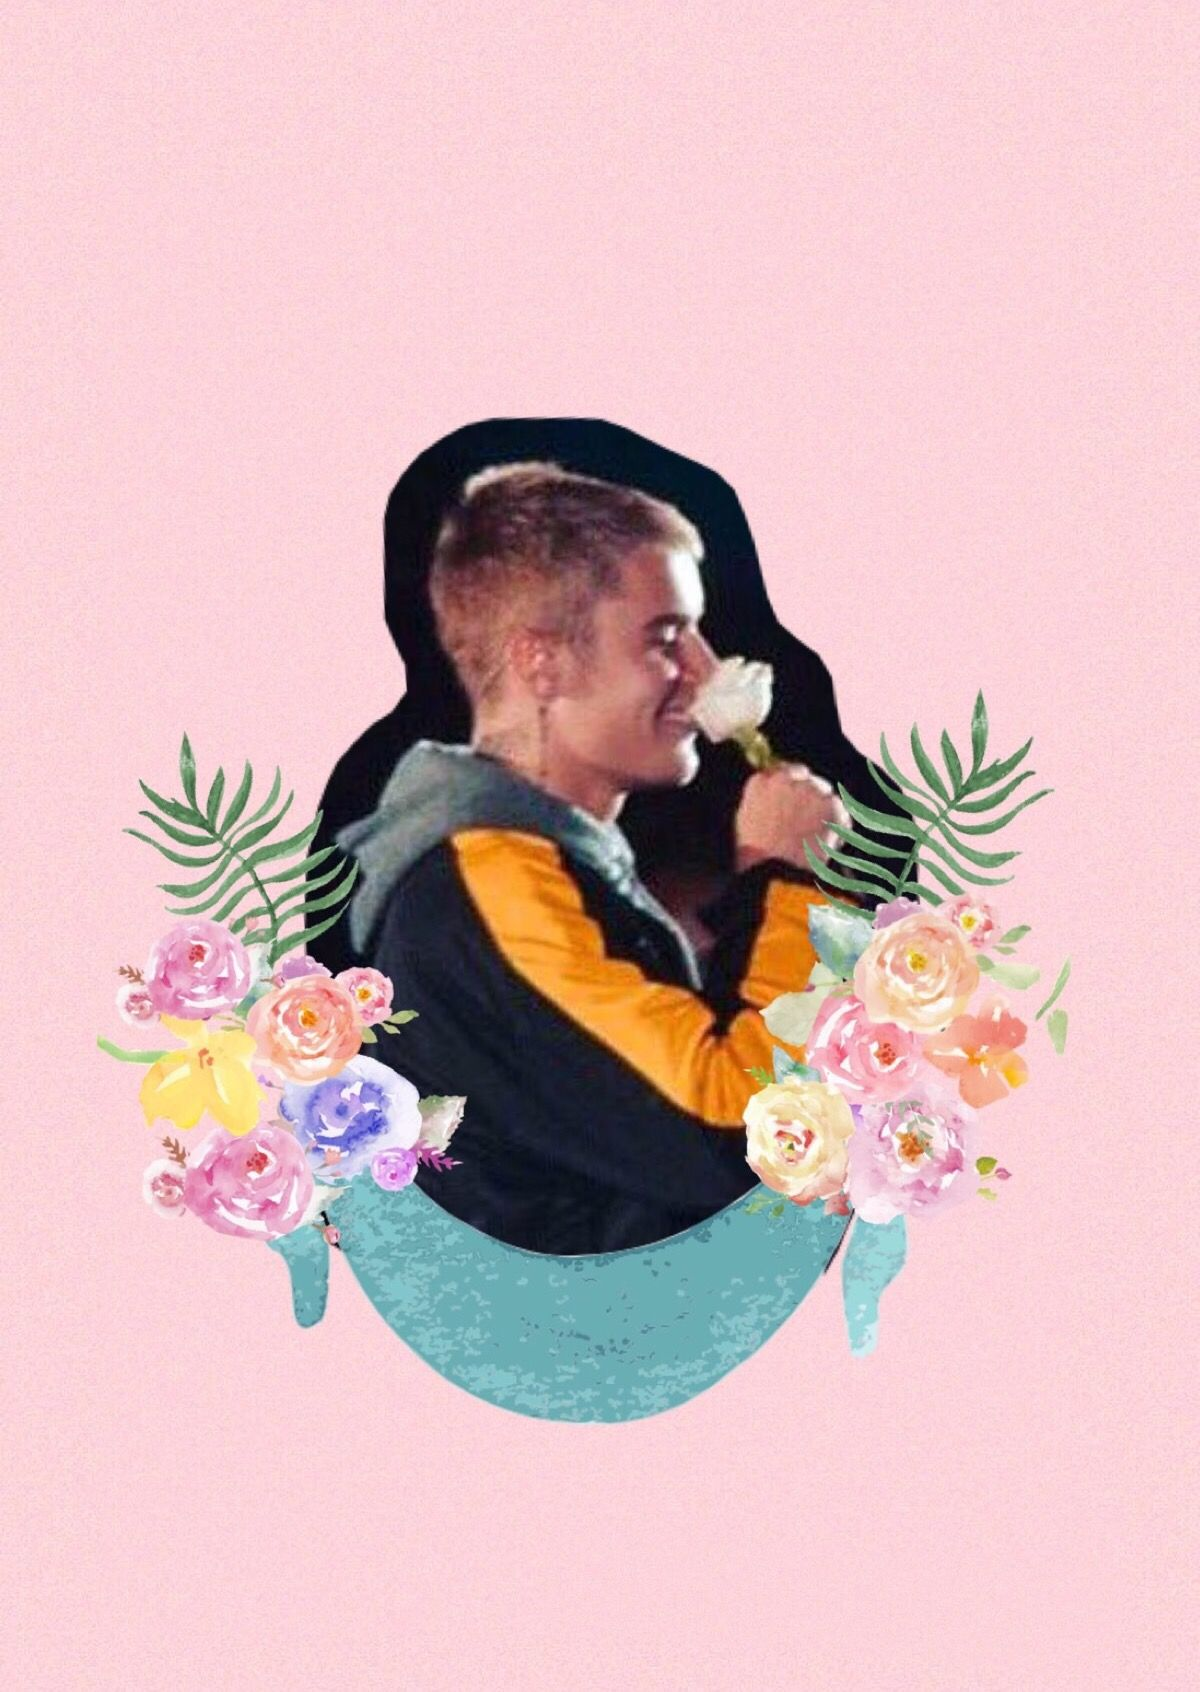 Justin iphone wallpaper tumblr - Justin Bieber Lockscreen Wallpaper Pink Iphone Tumblr Roses